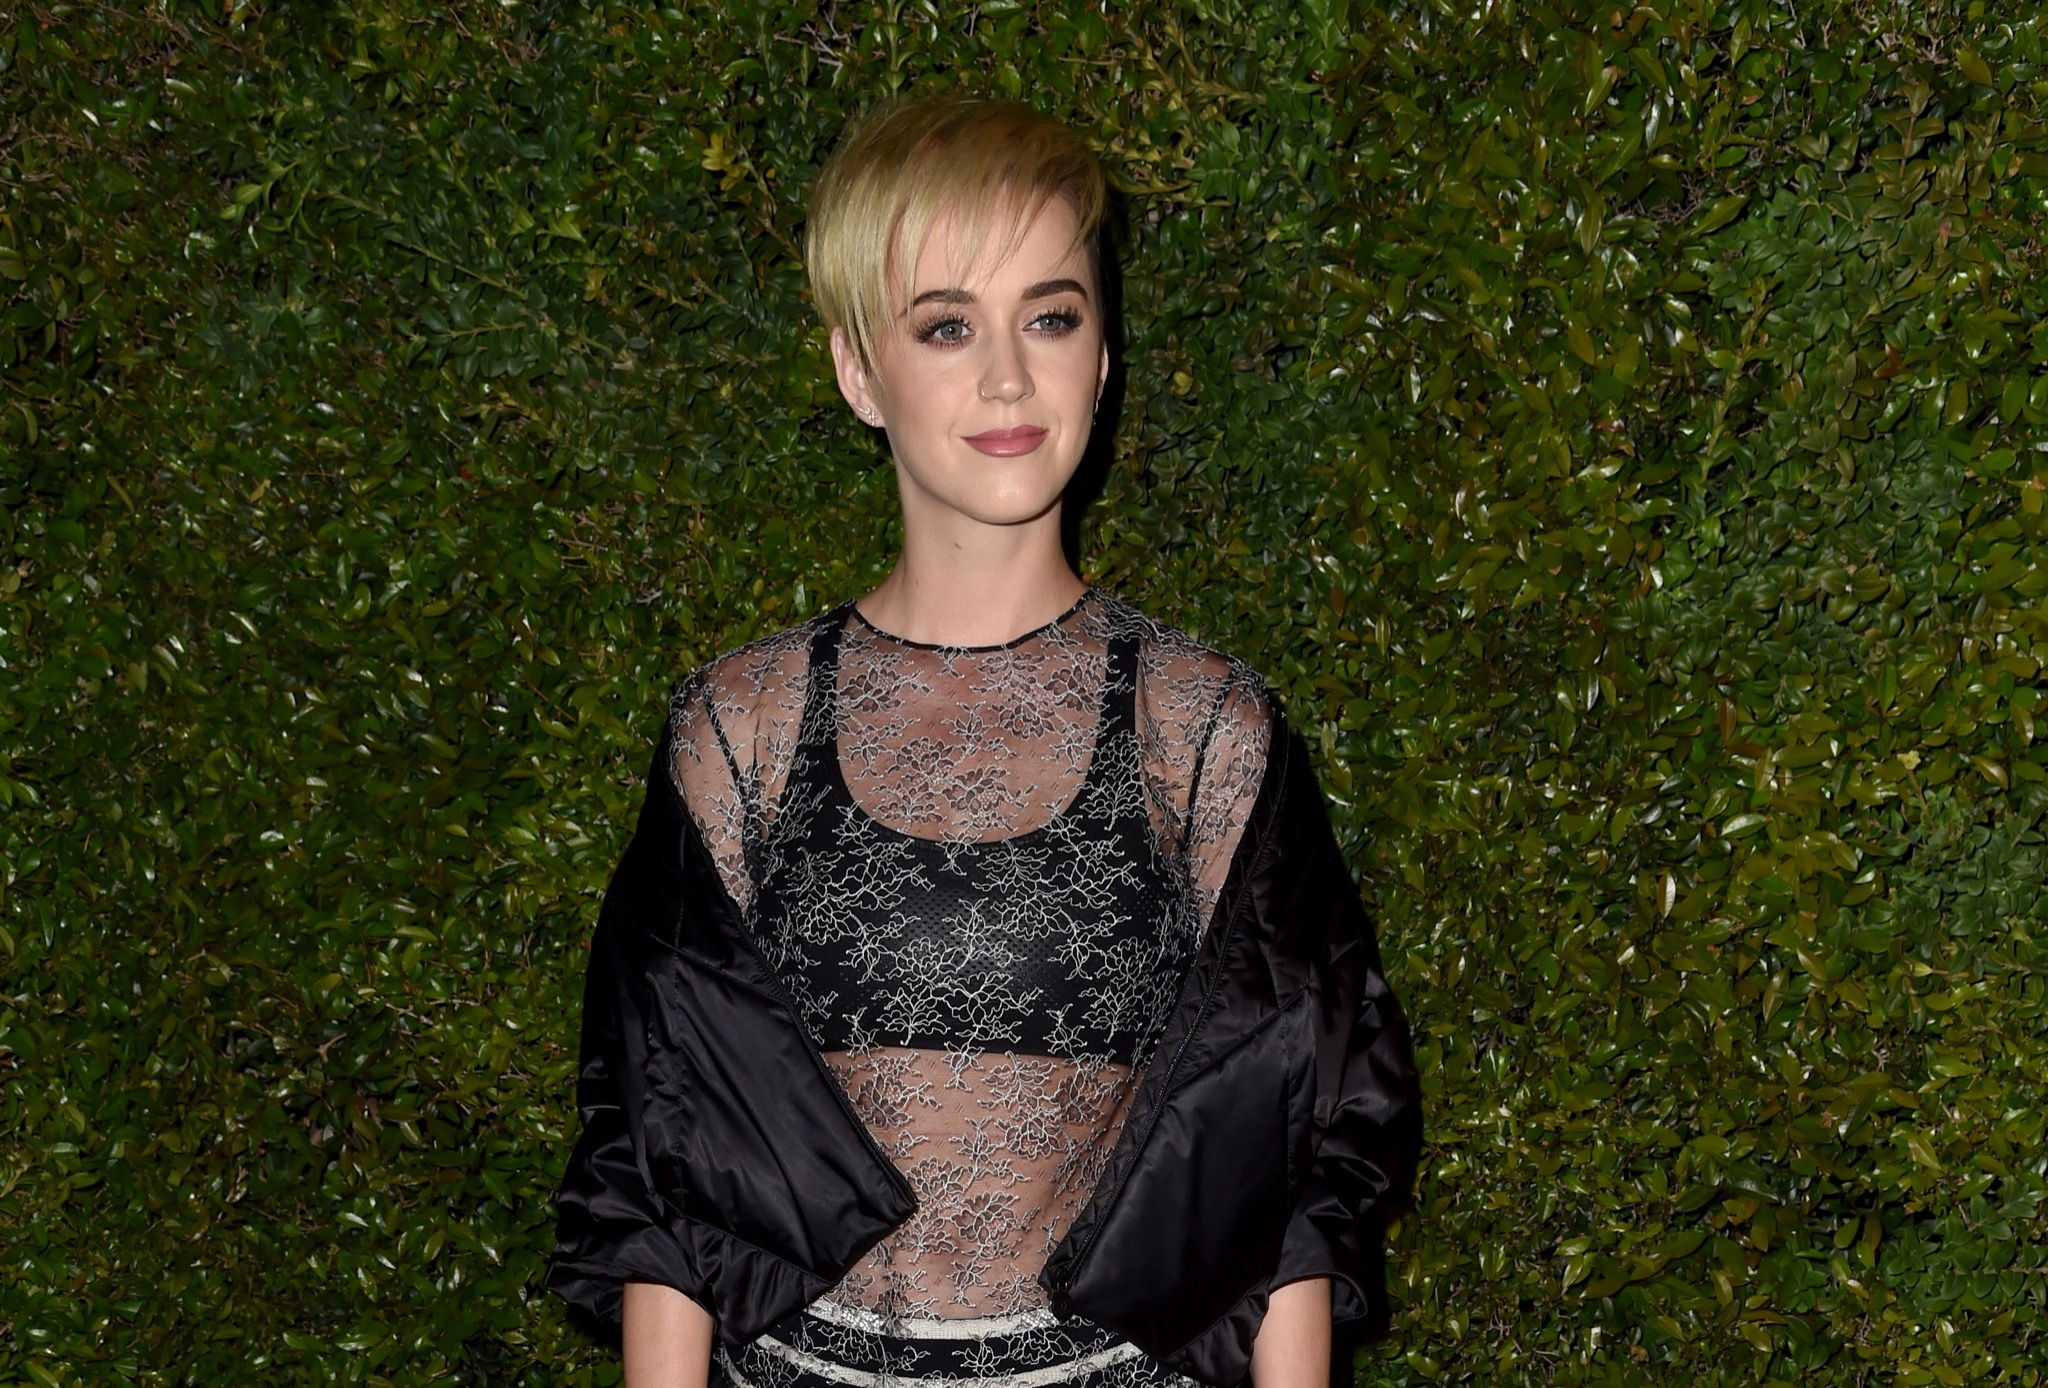 Katy Perry Reveals If She Responds to Bad Blood on New Album